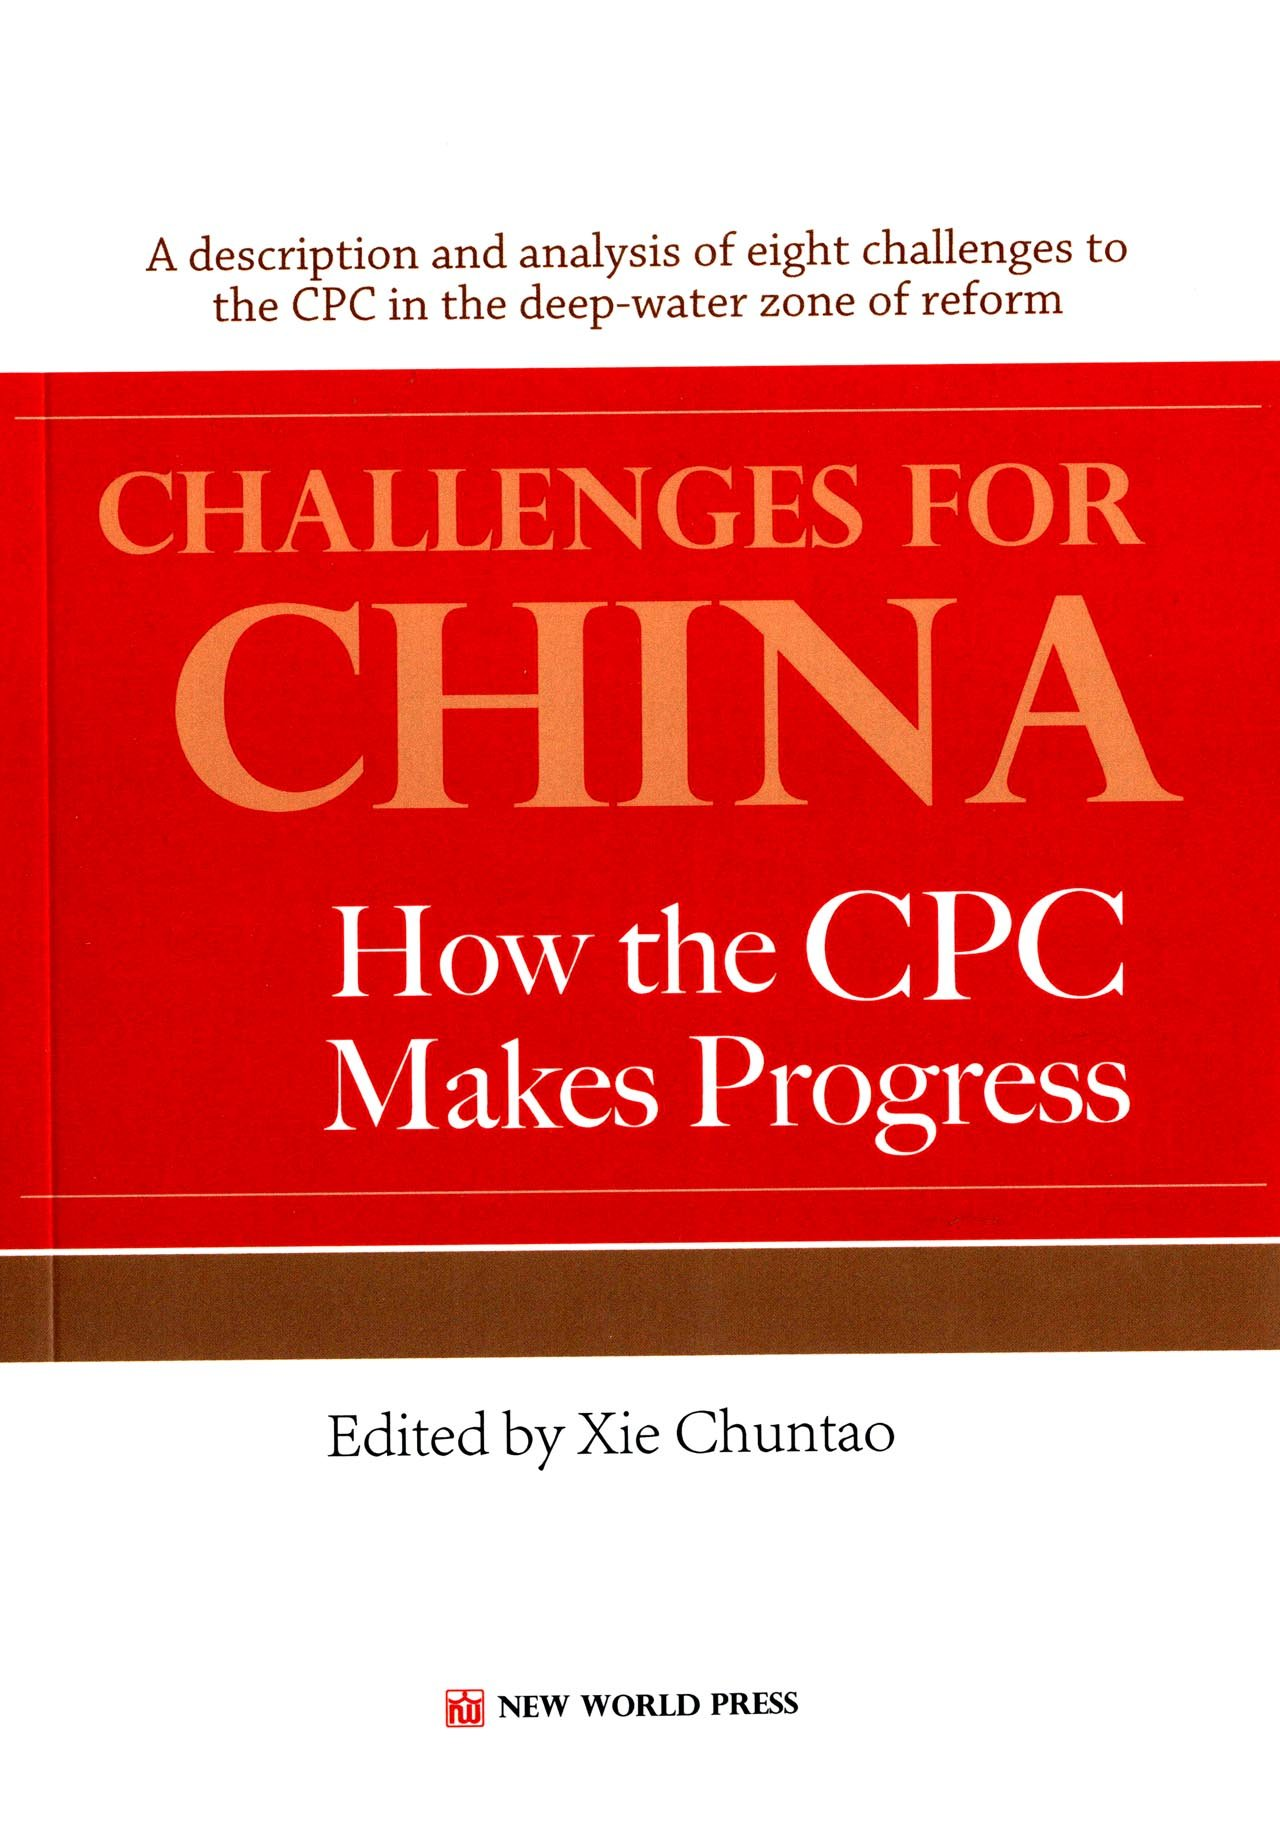 Challenges for China - How the CPC Makes Progress